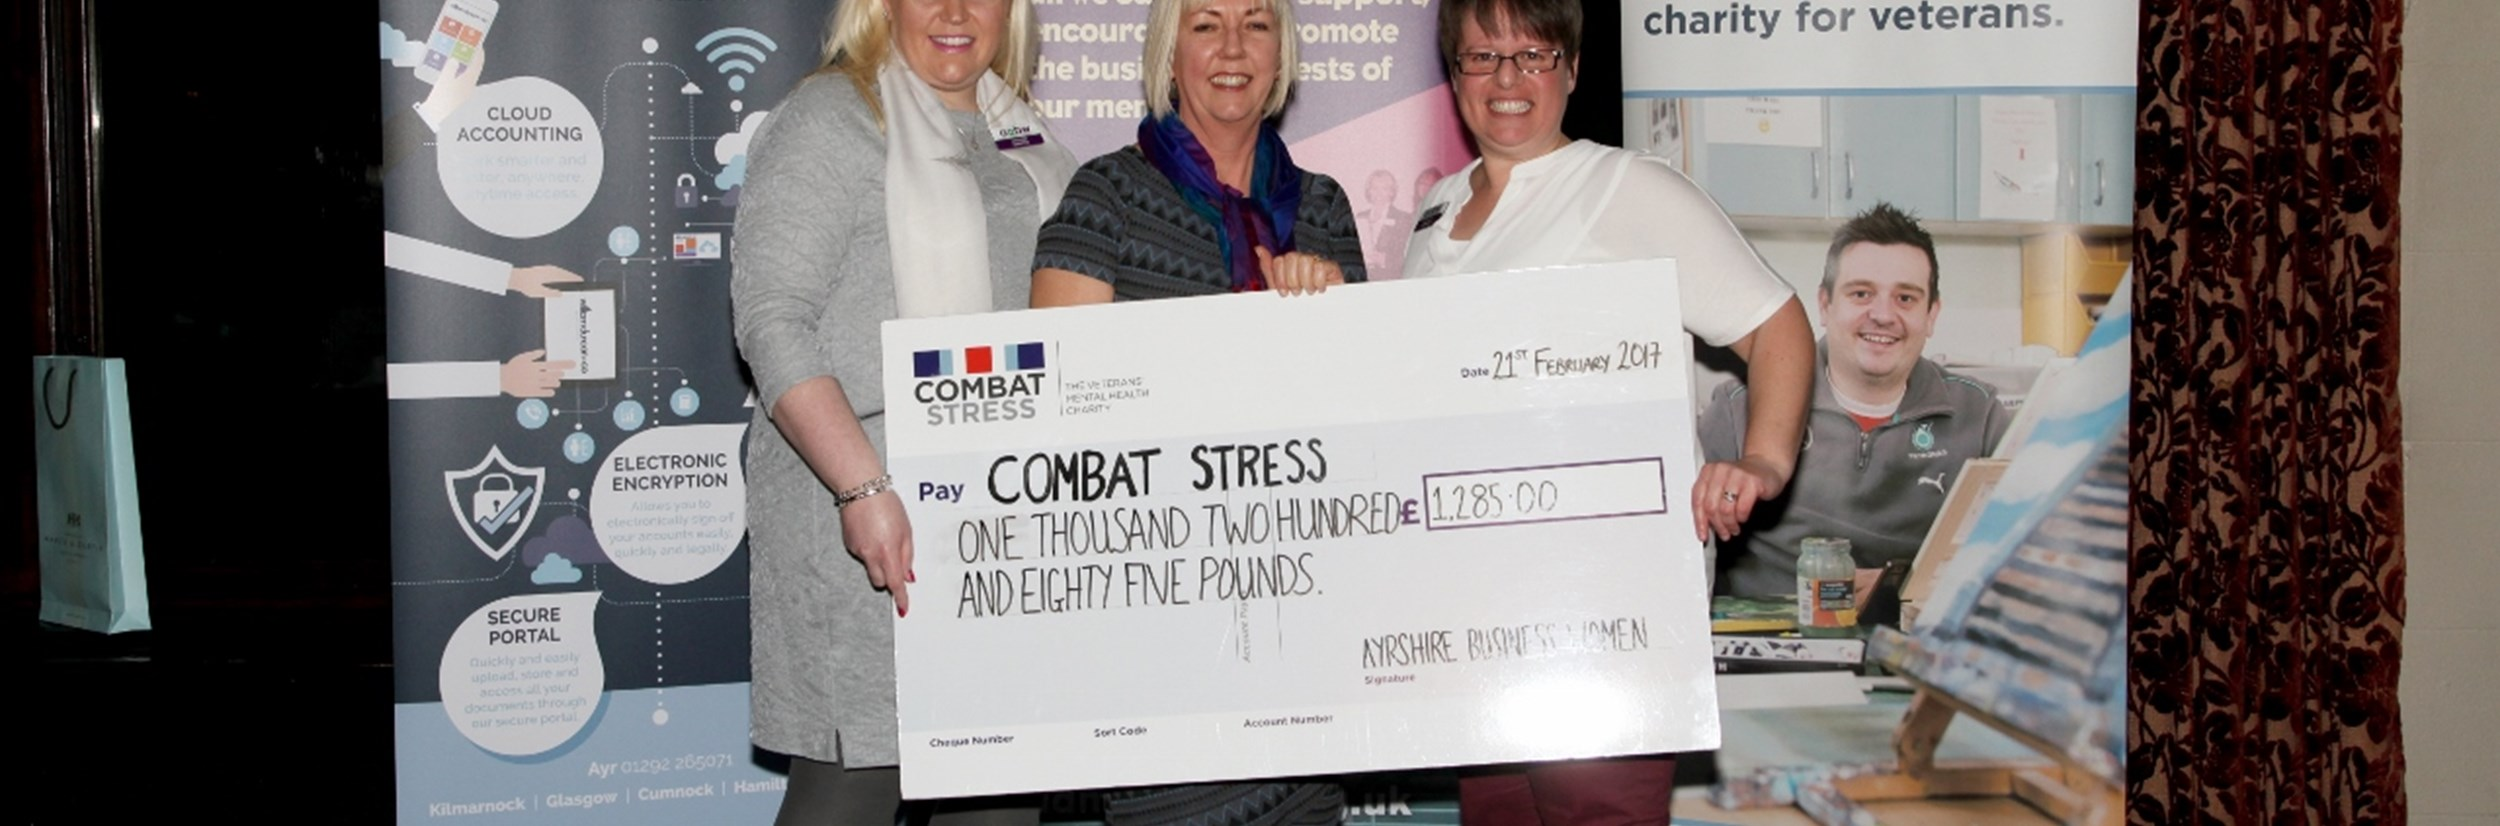 Charity Donation to Combat Stress